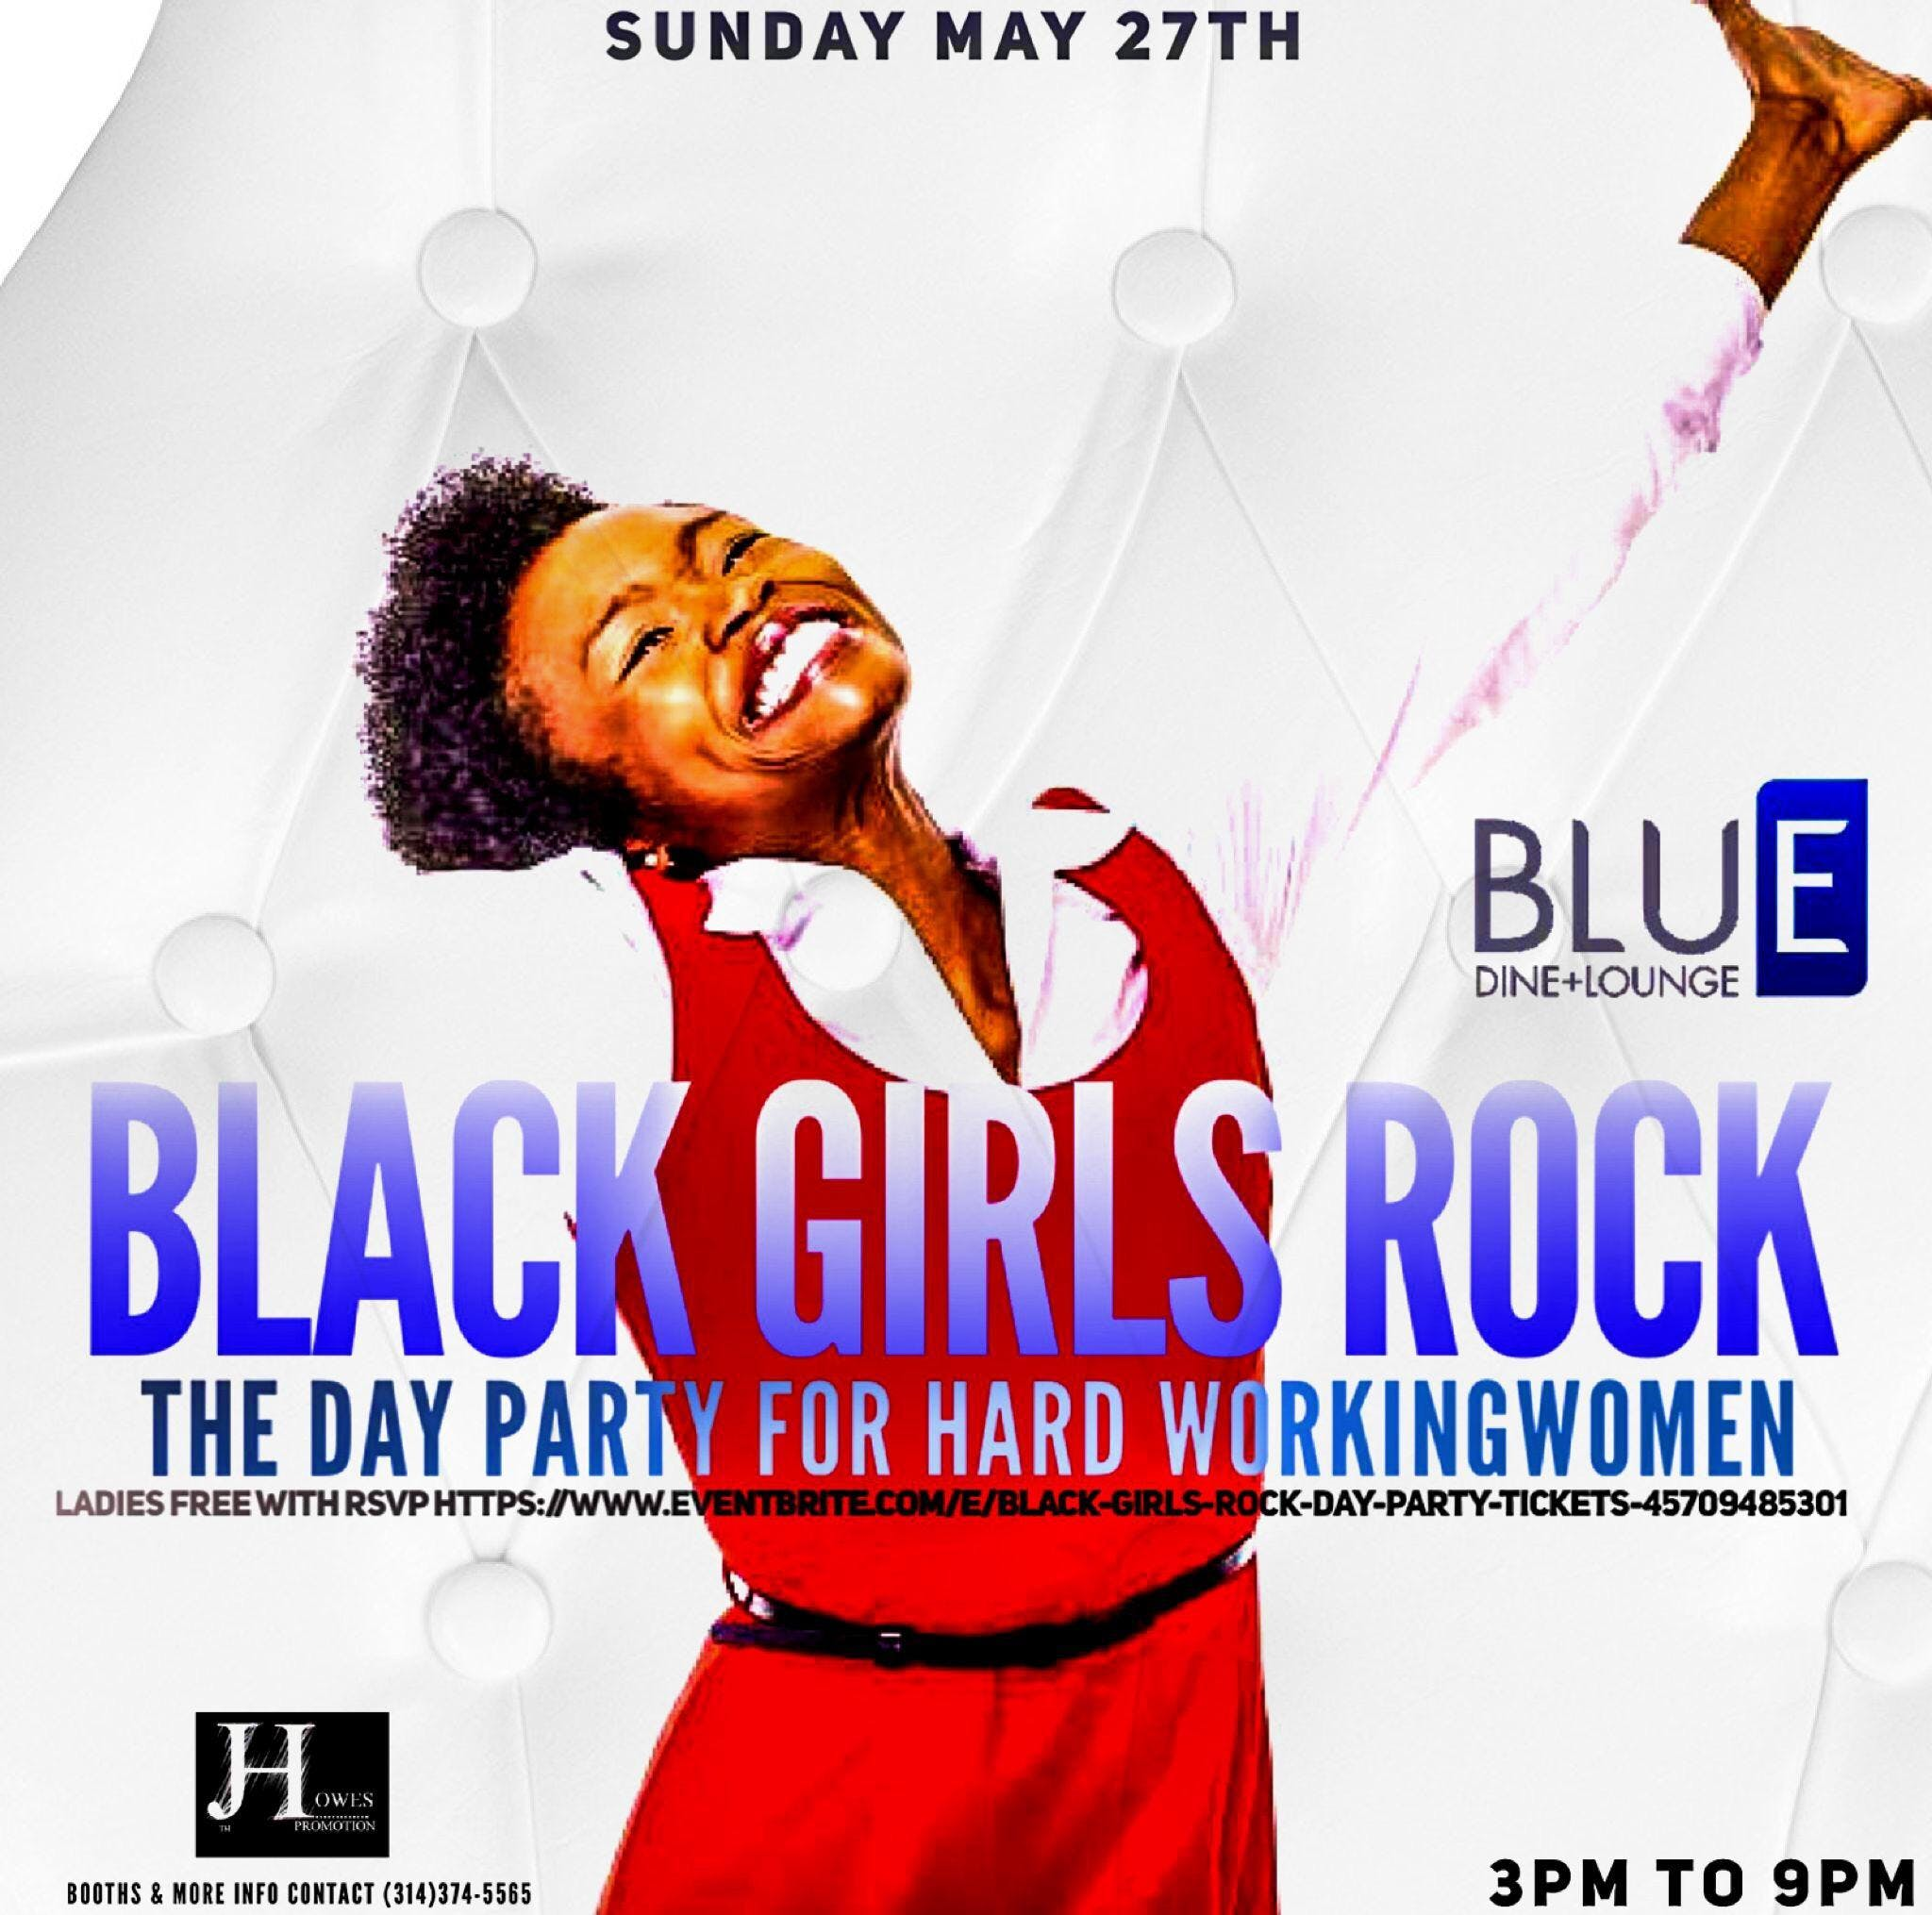 BLACK GIRLS ROCK DAY PARTY